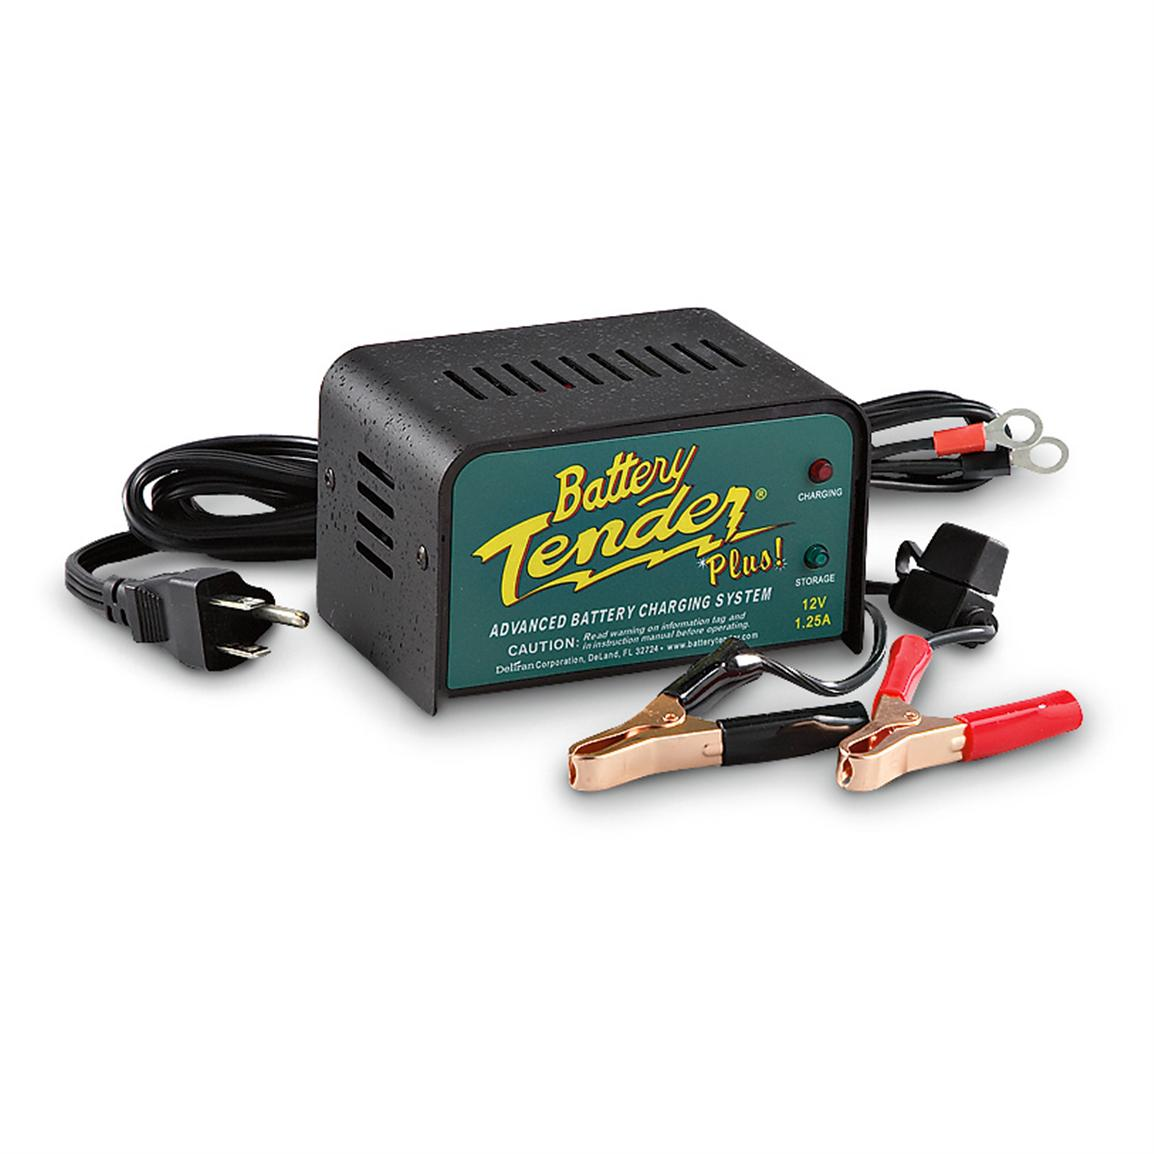 Battery Tender Plus Battery Charger